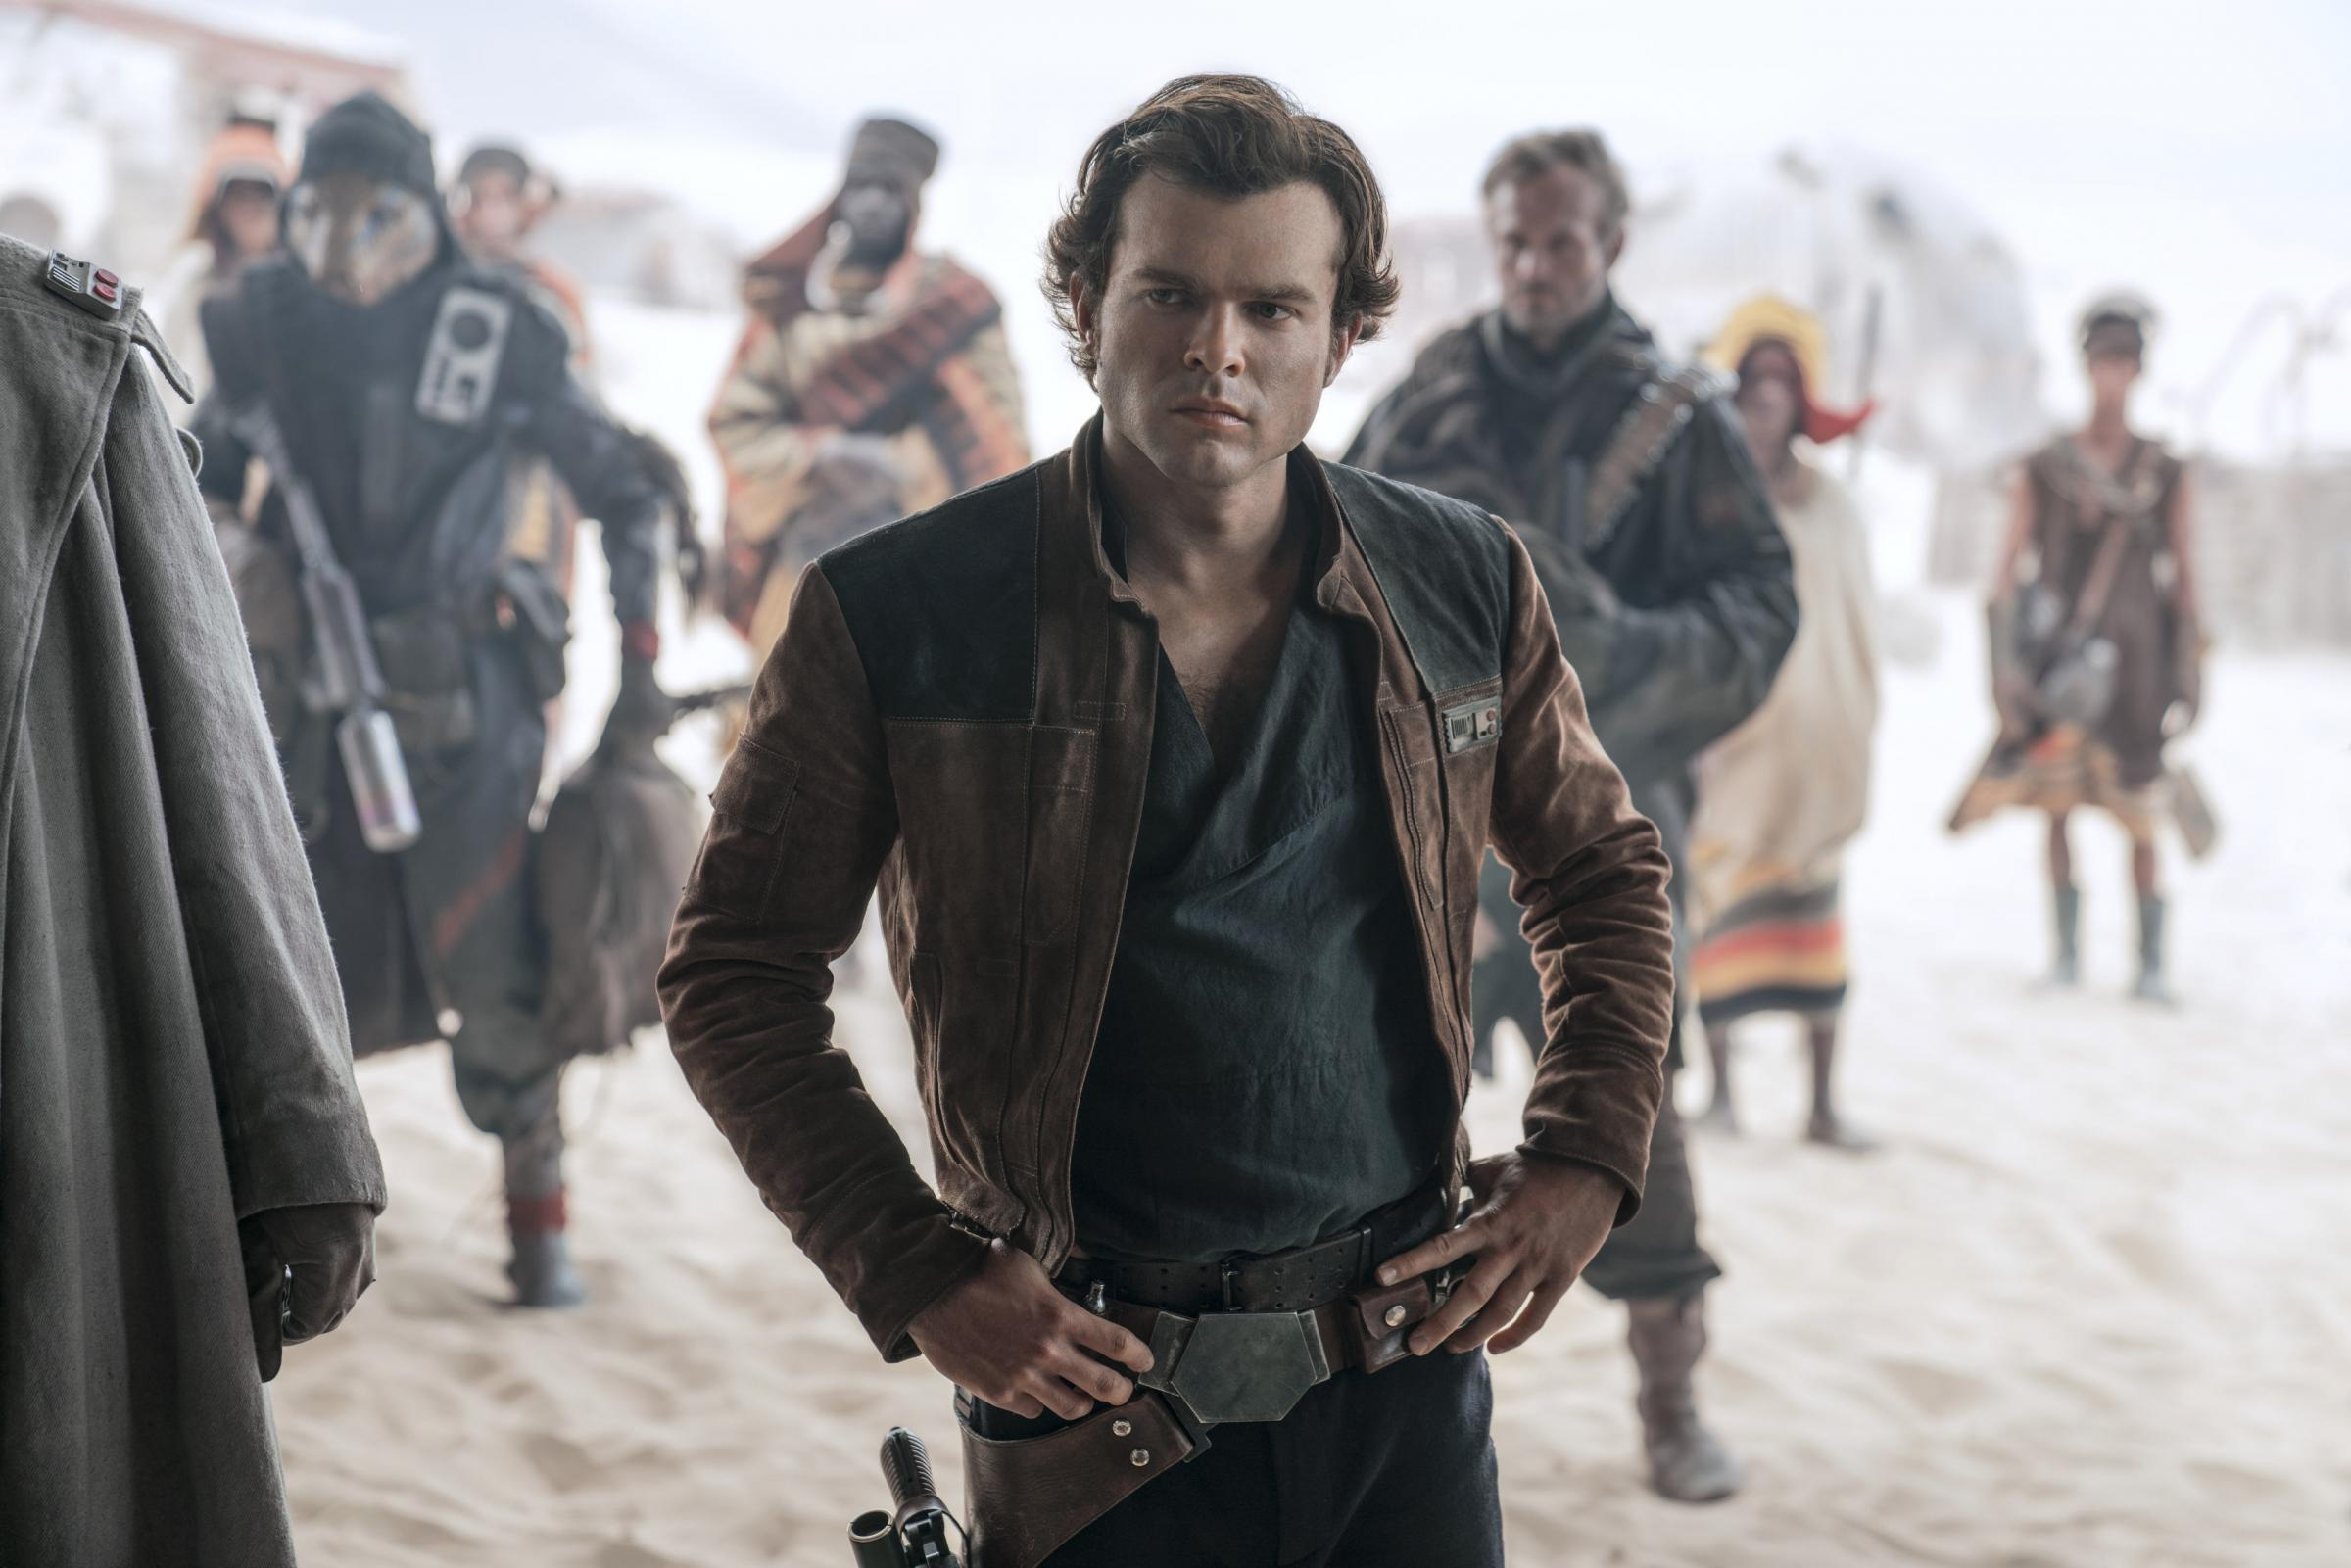 Alden Ehrenreich plays Star Wars' stuck up, half-witted, scruffy-looking nerf herder